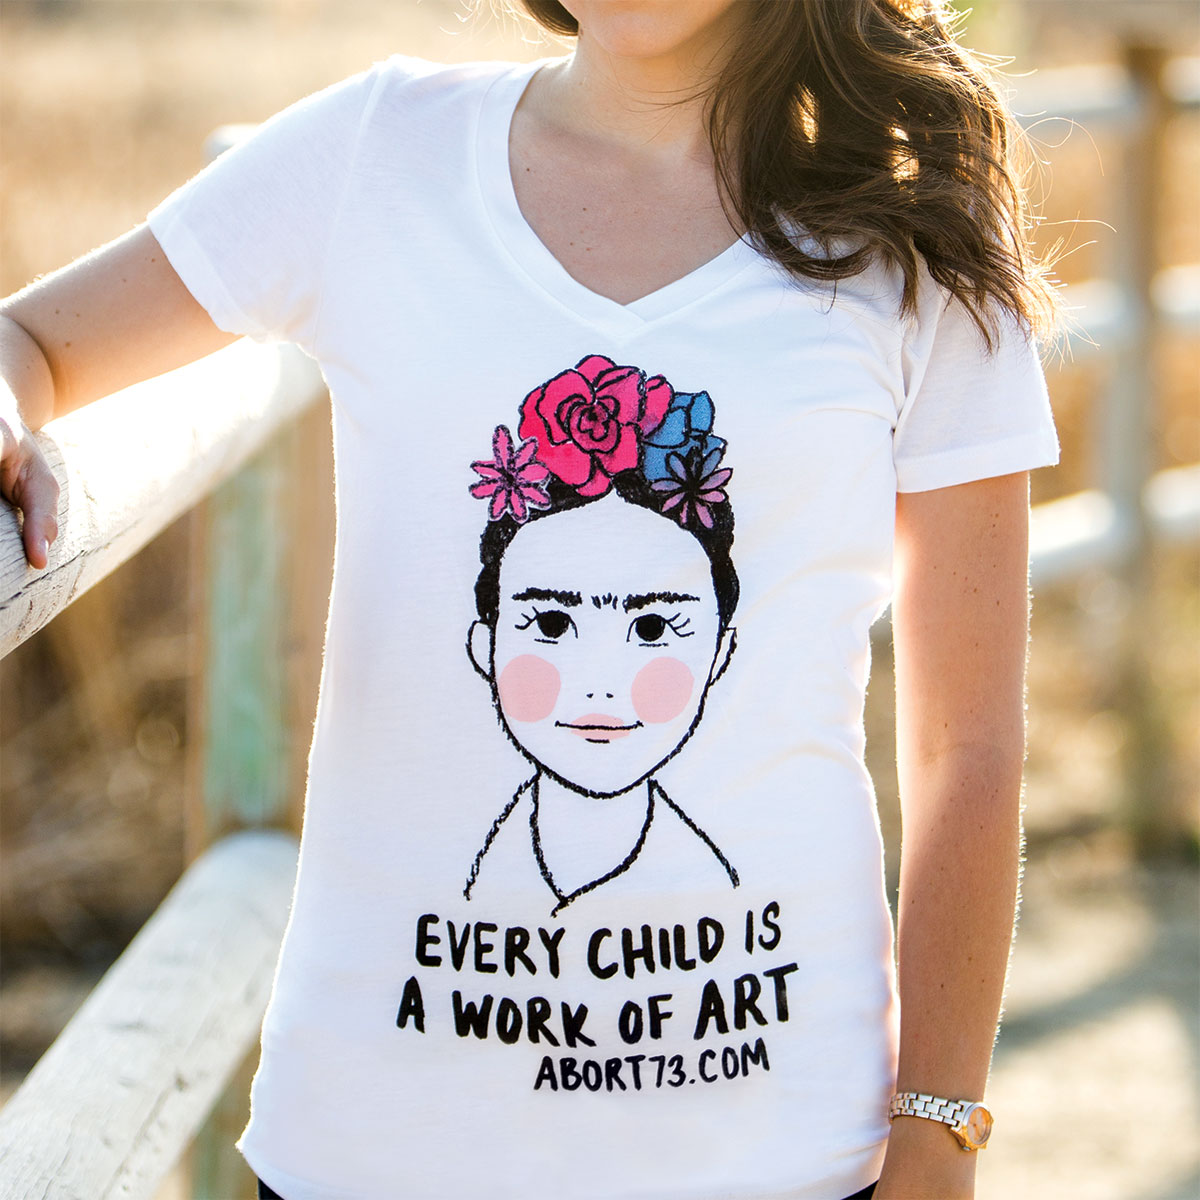 Every Child is a Work of Art (Abort73 Girls V-neck)